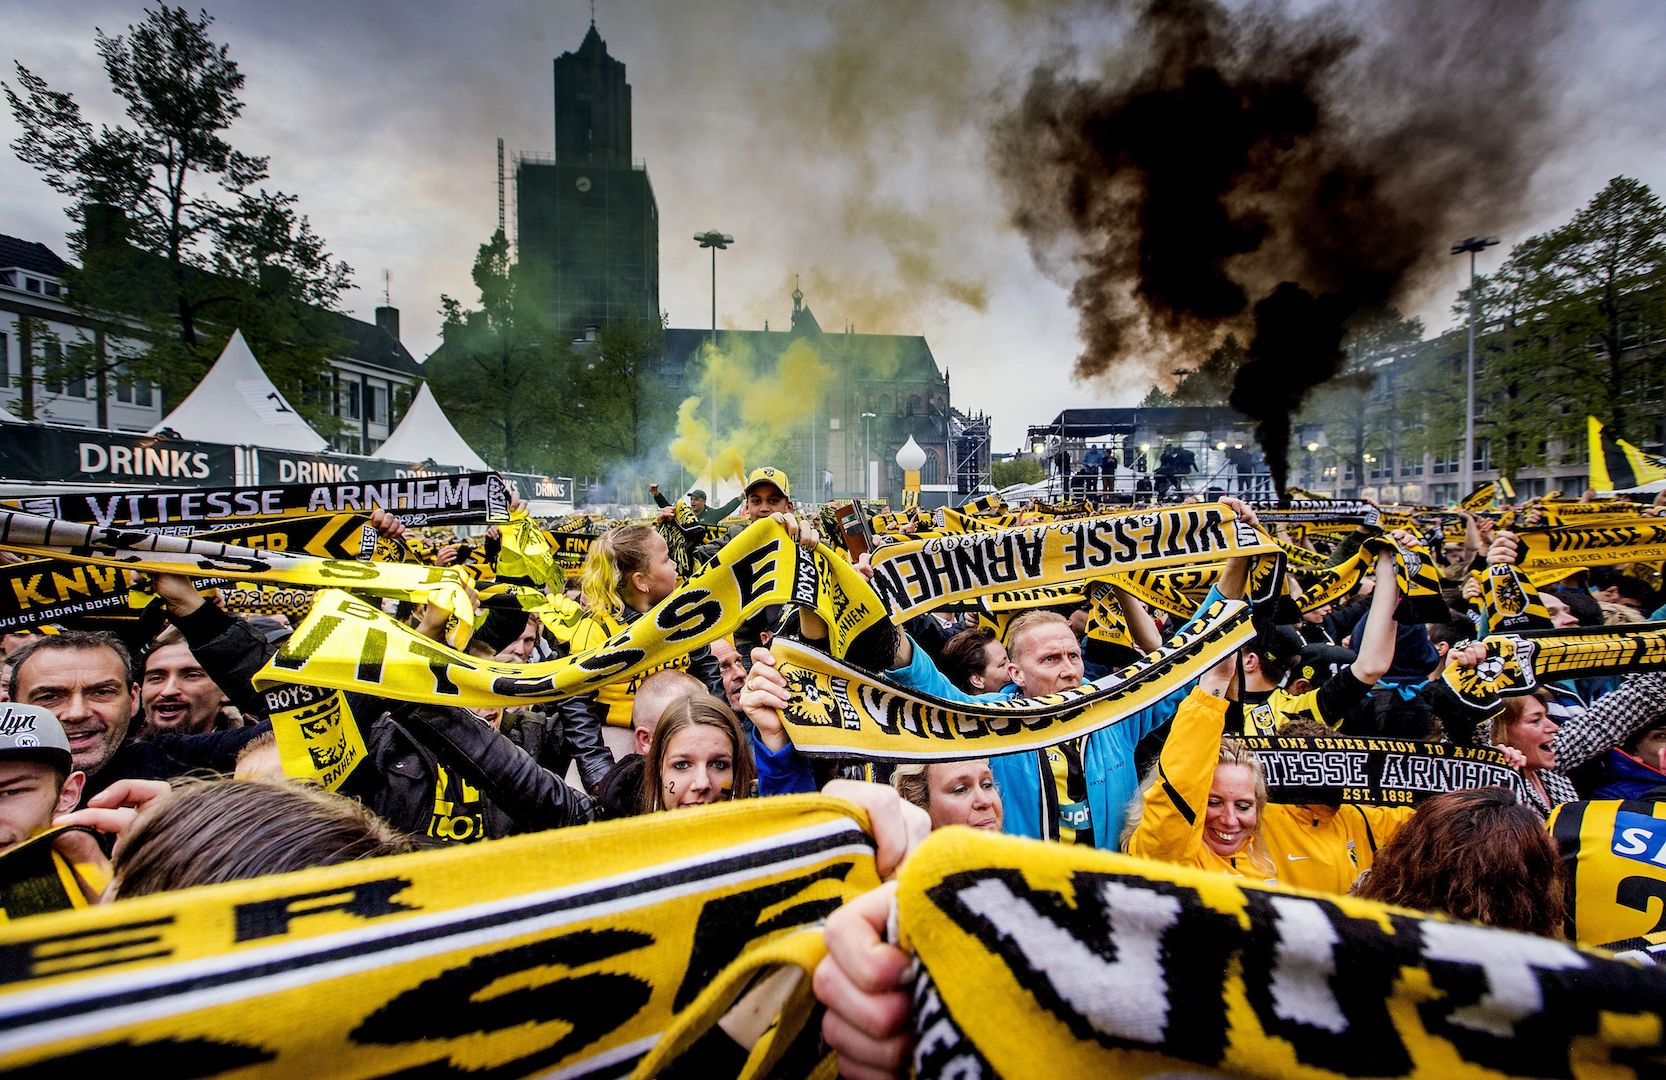 Netherland's Vitesse Arnhem supporters celebrate during the ceremony of Vitesse Arnhem's selection in front of City Hall of Arnhem on May 1, 2017, after winning the Dutch KNVB Cup football final. / AFP PHOTO / ANP / Koen van Weel / Netherlands OUT (Photo credit should read KOEN VAN WEEL/AFP/Getty Images)